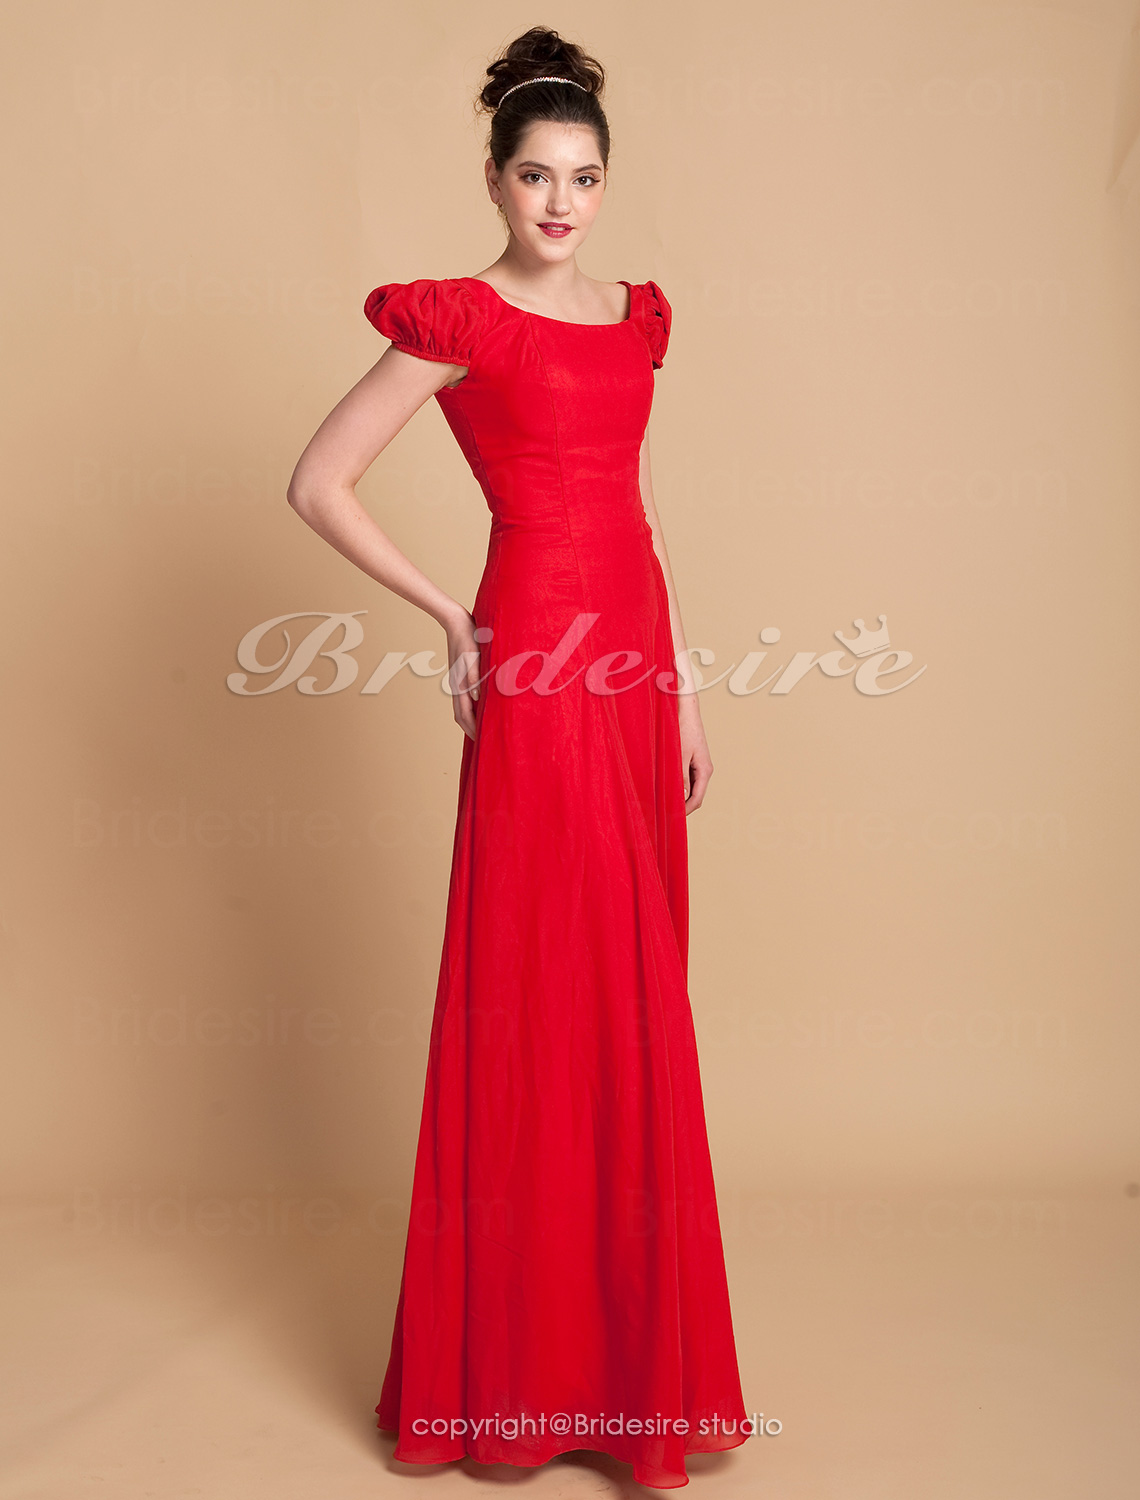 A-line Floor-length Juliet Chiffon Square Bridesmaid/ Wedding Party Dress